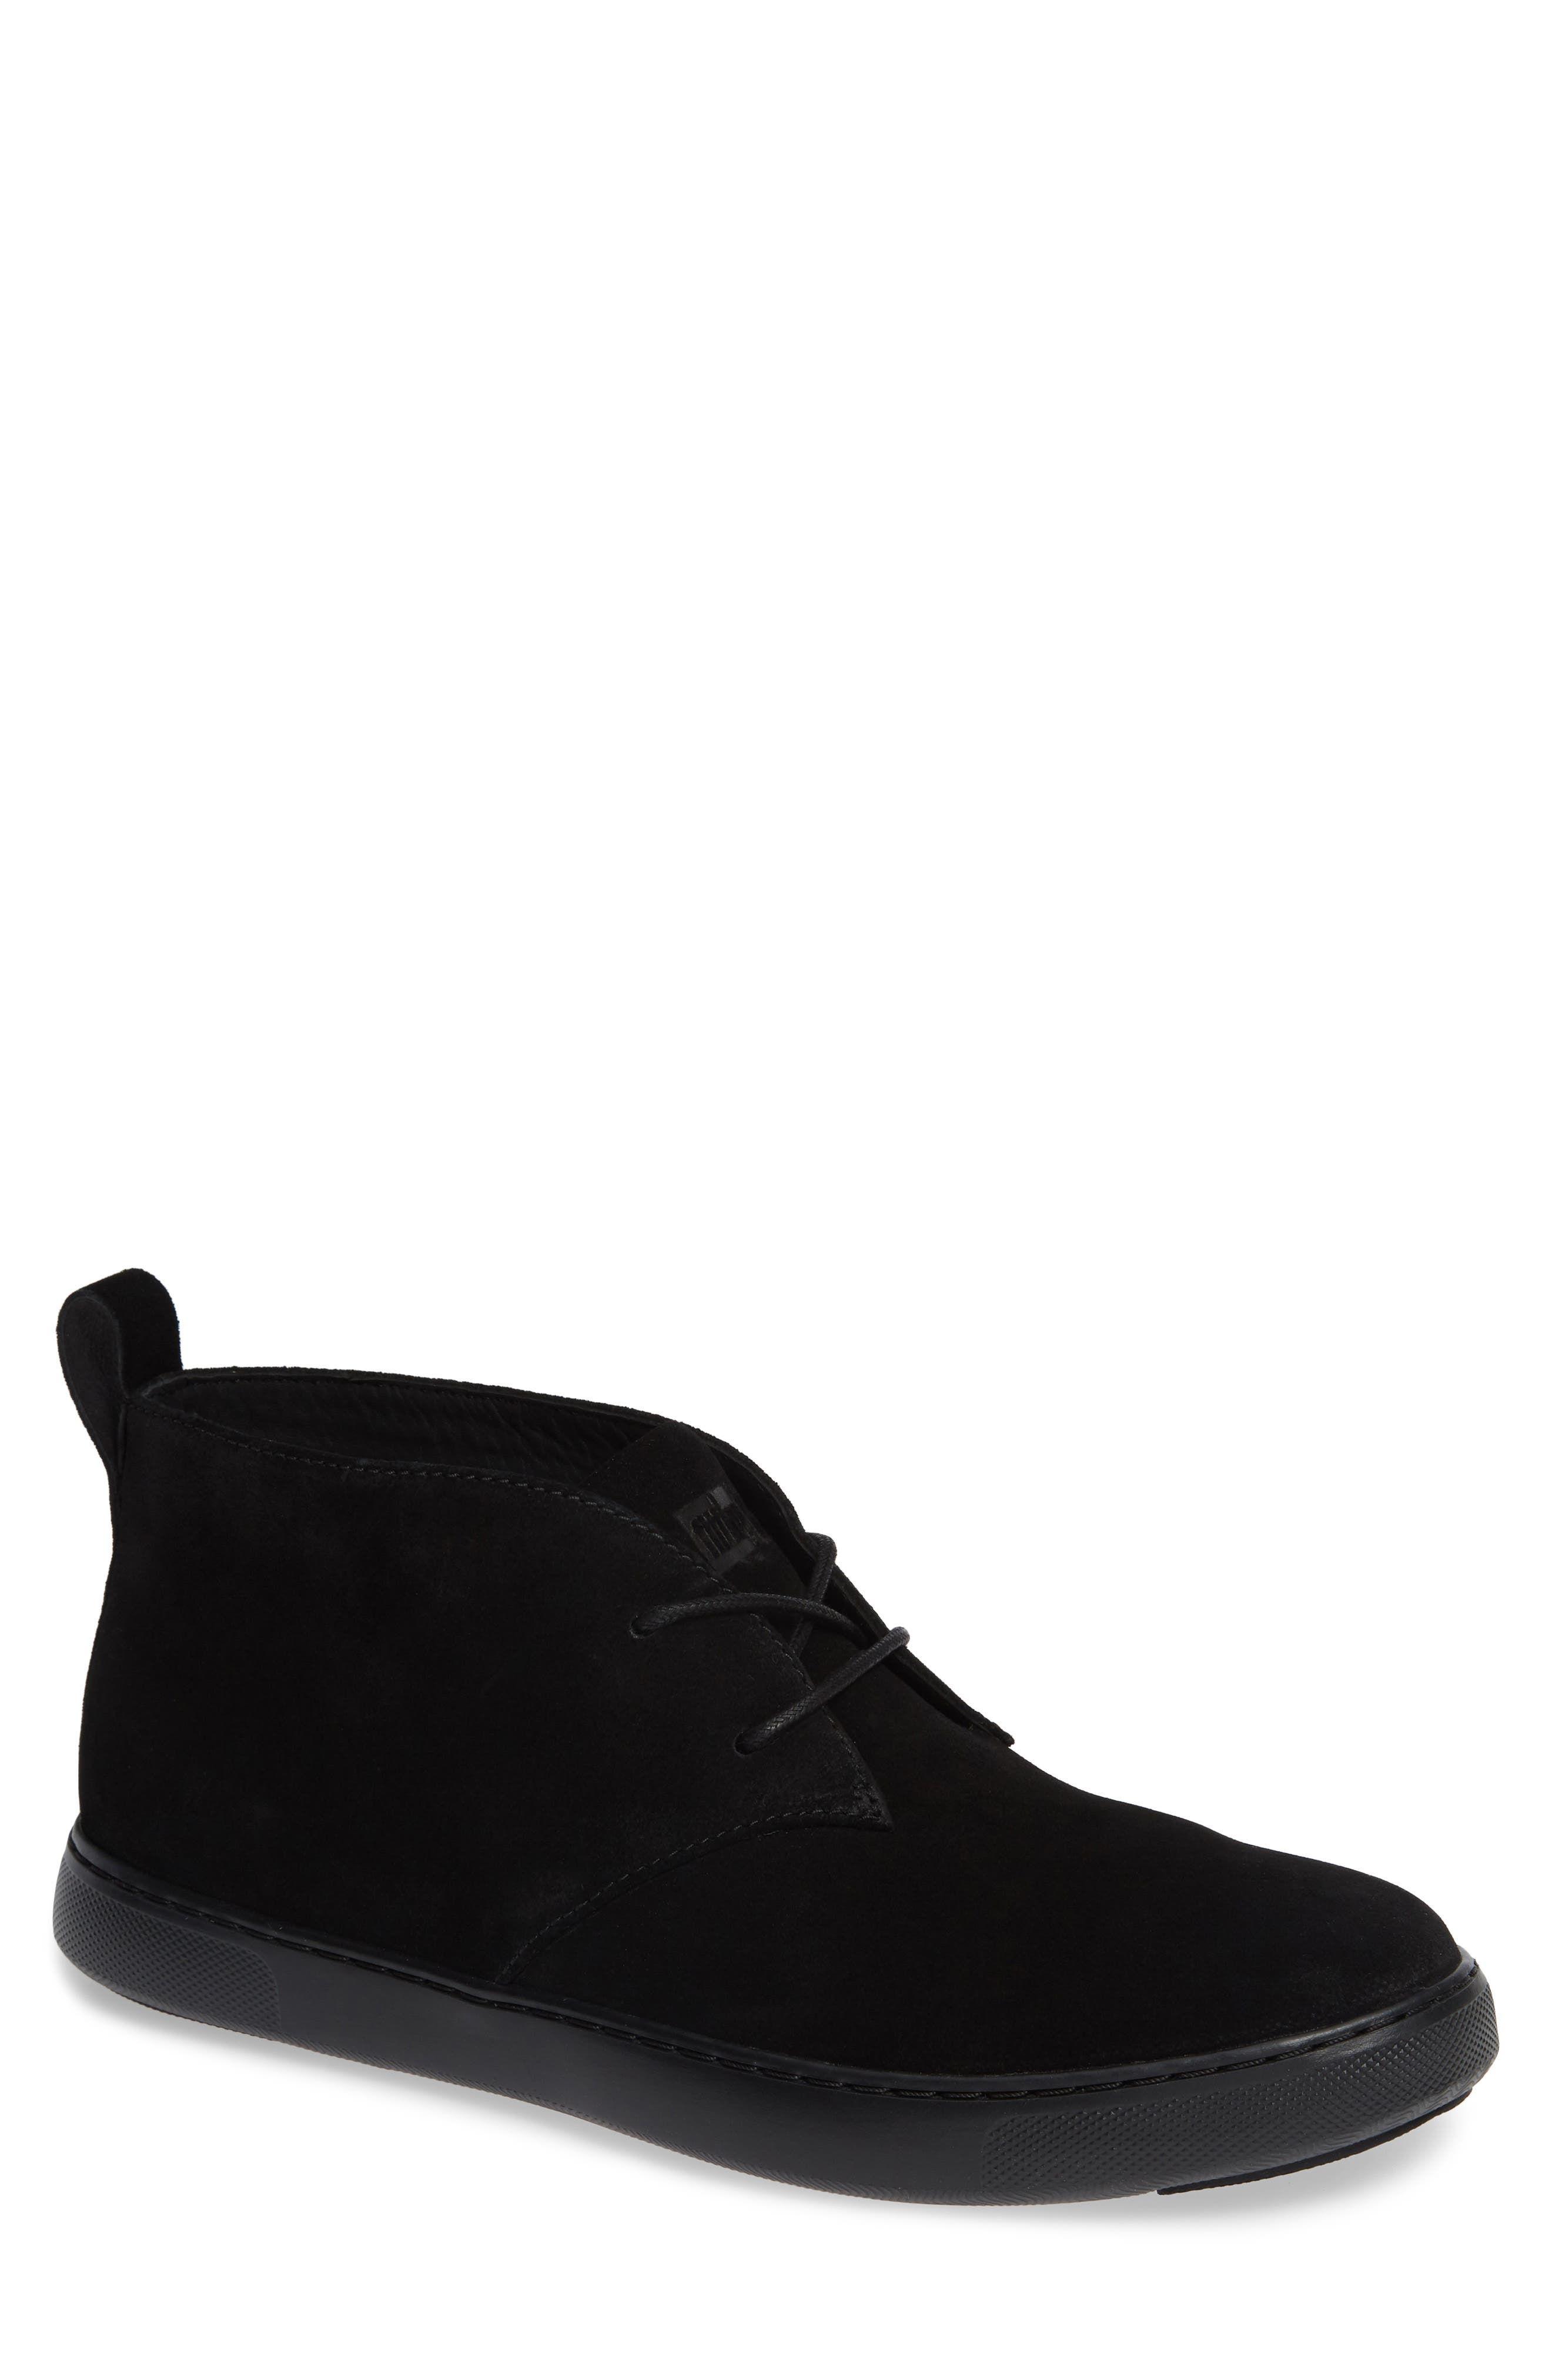 Zackery Chukka Boot,                         Main,                         color, 001